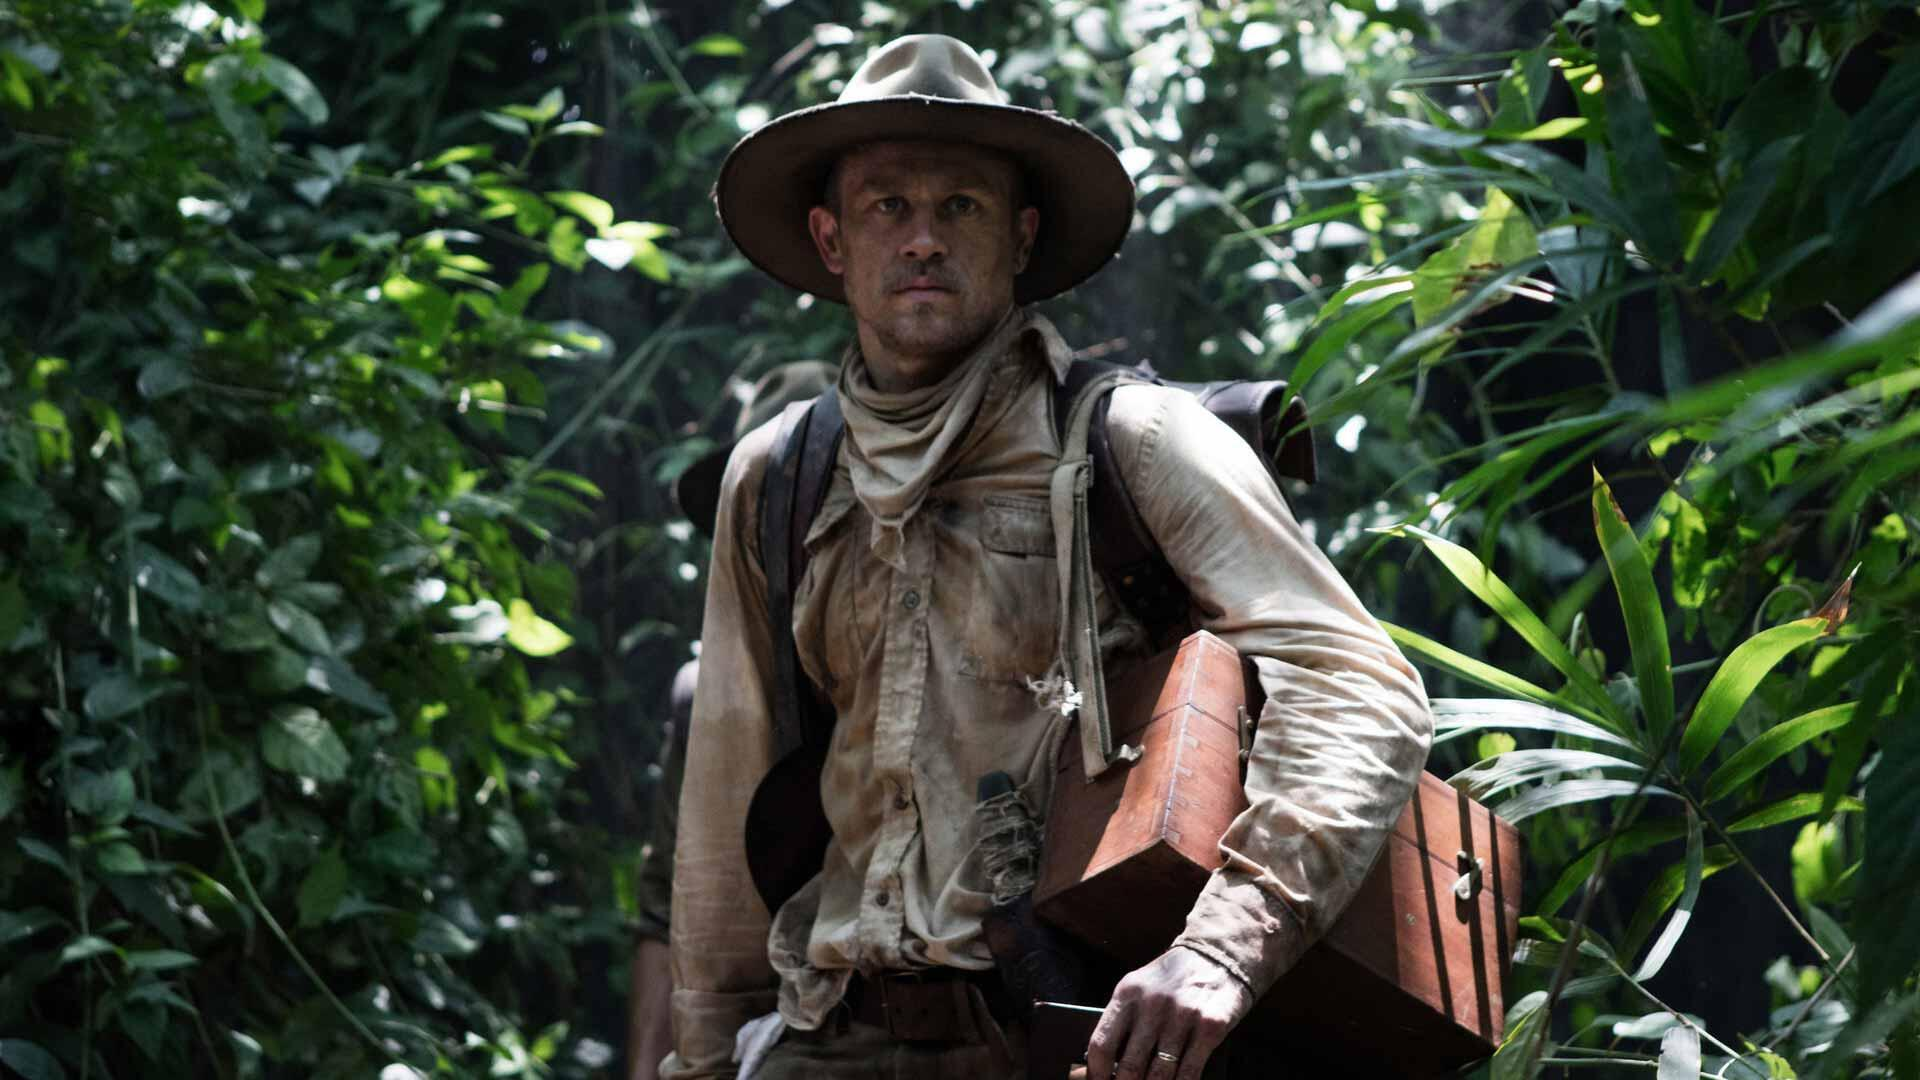 the lost city of z 2017 after credits hq1 | Amazon Prime Video: 25 best movies to watch tonight | The Paradise